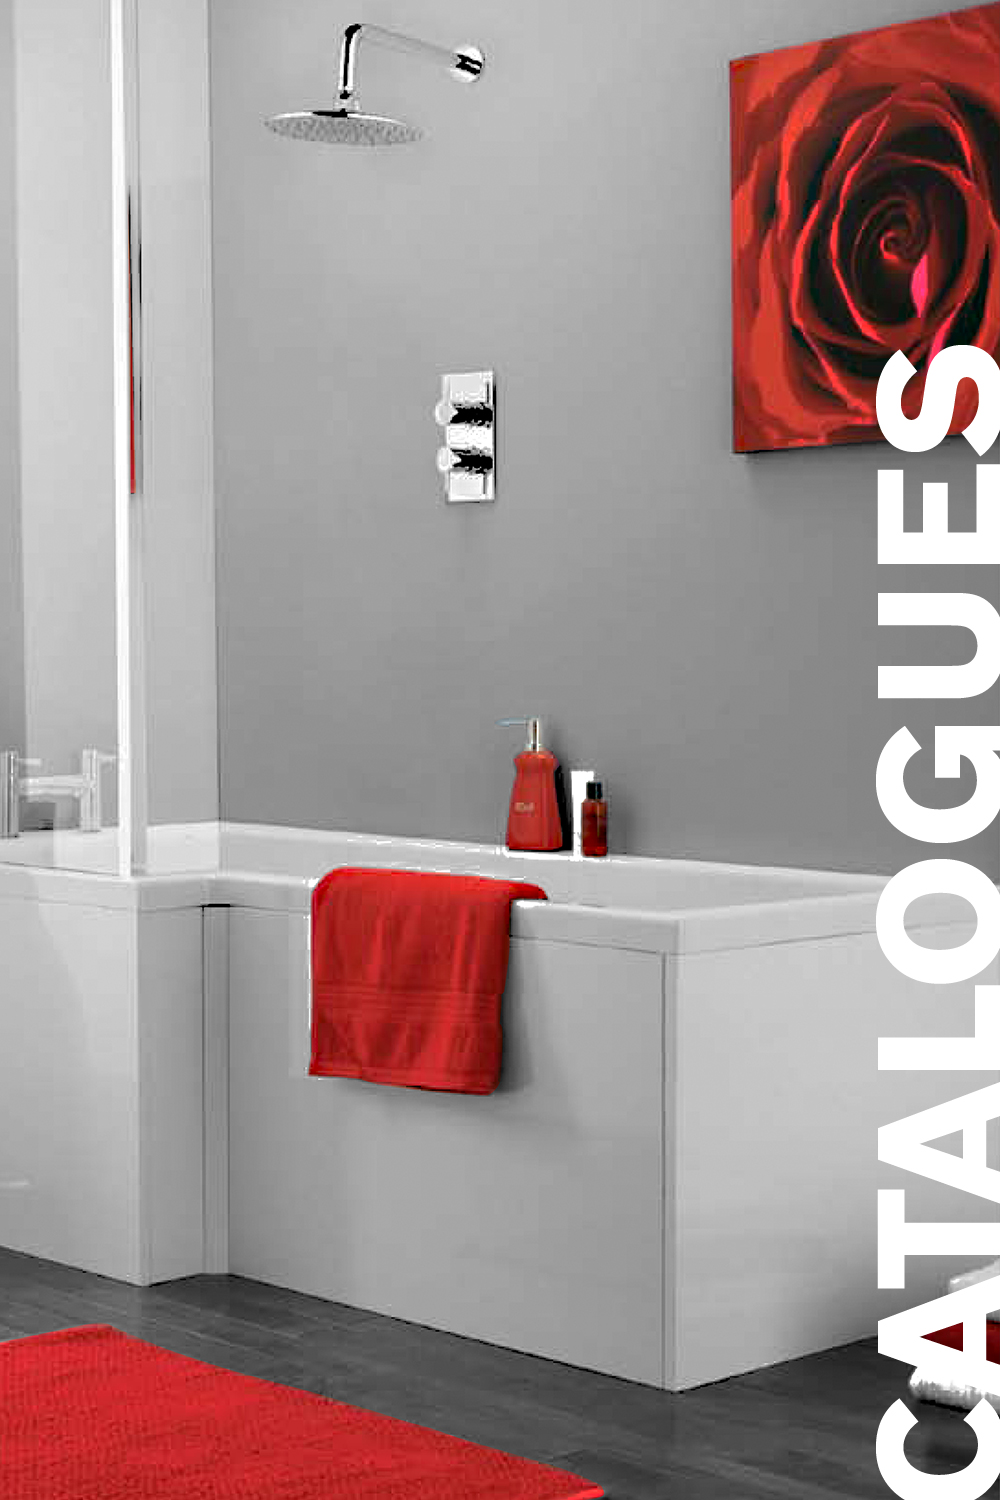 Product Catalogue for Aquamoods Bathrooms